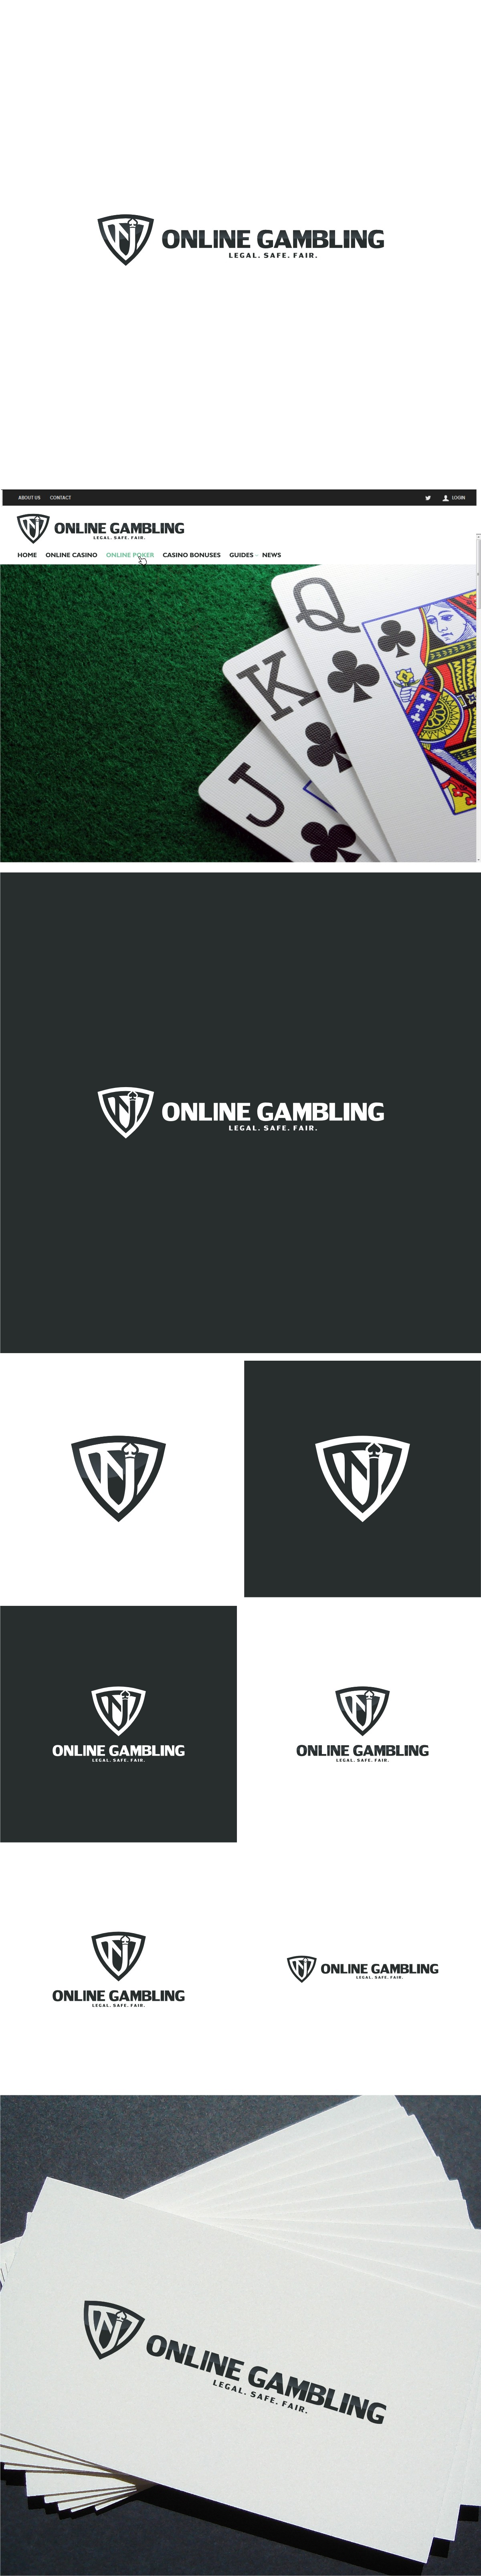 Design a logo for New Jersey online gambling site